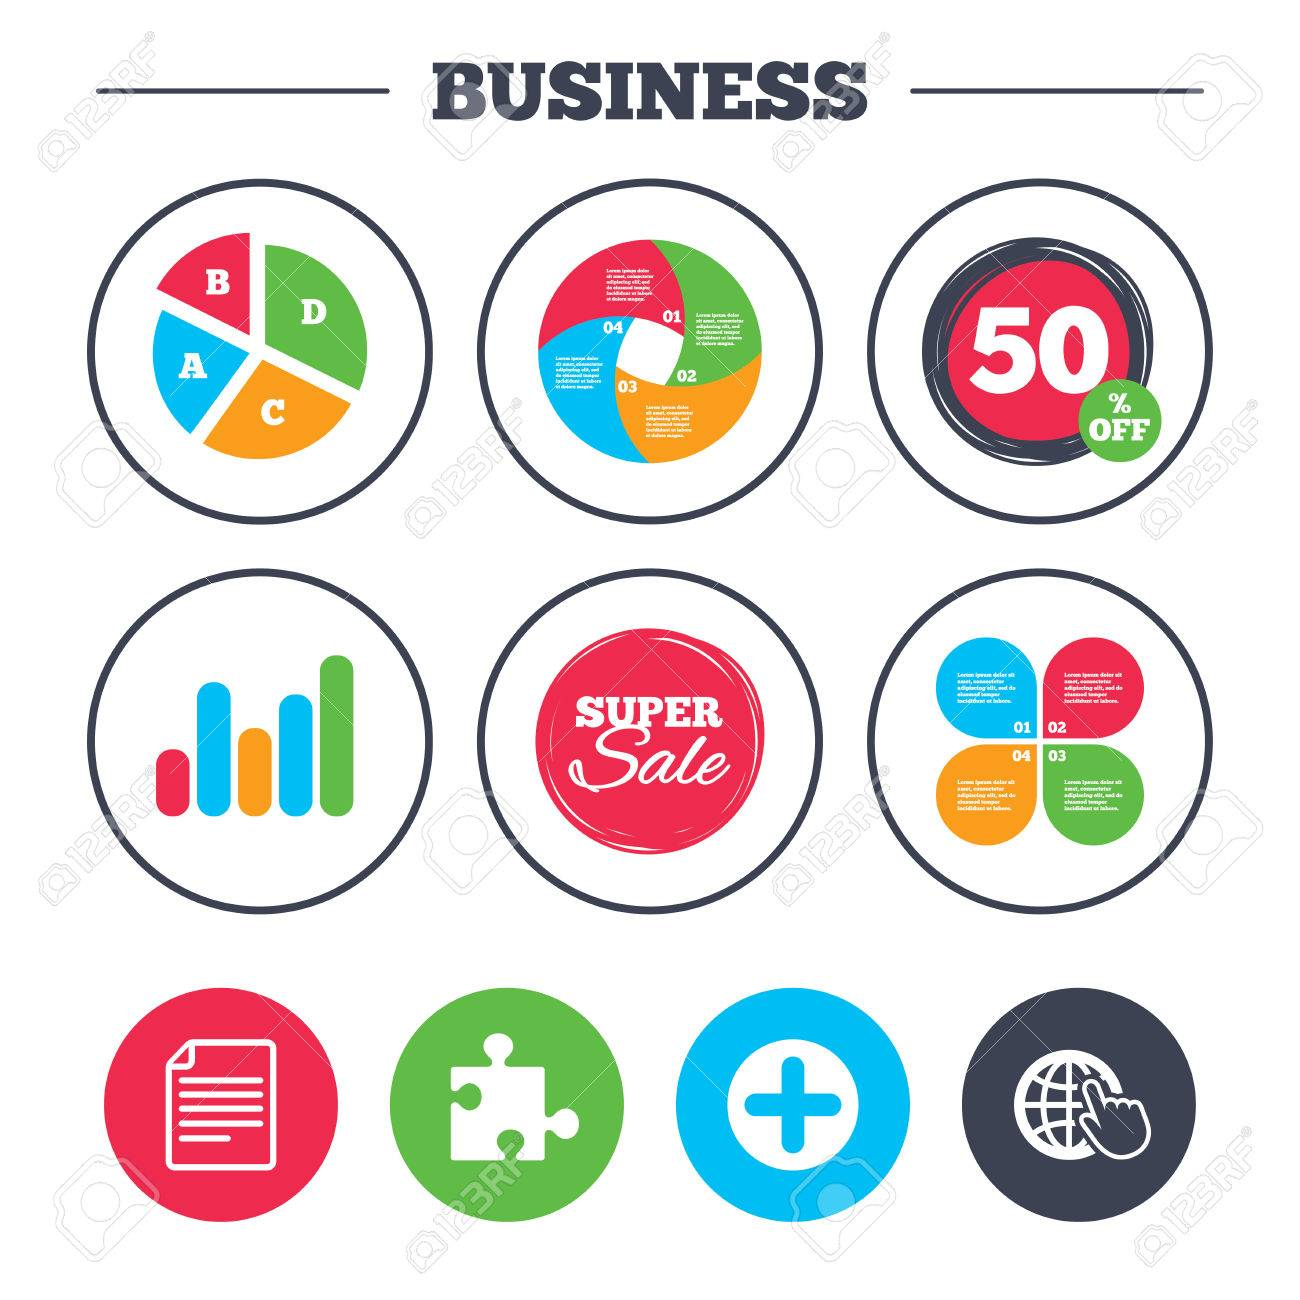 Business pie chart growth graph plus add circle and puzzle business pie chart growth graph plus add circle and puzzle piece icons document nvjuhfo Images